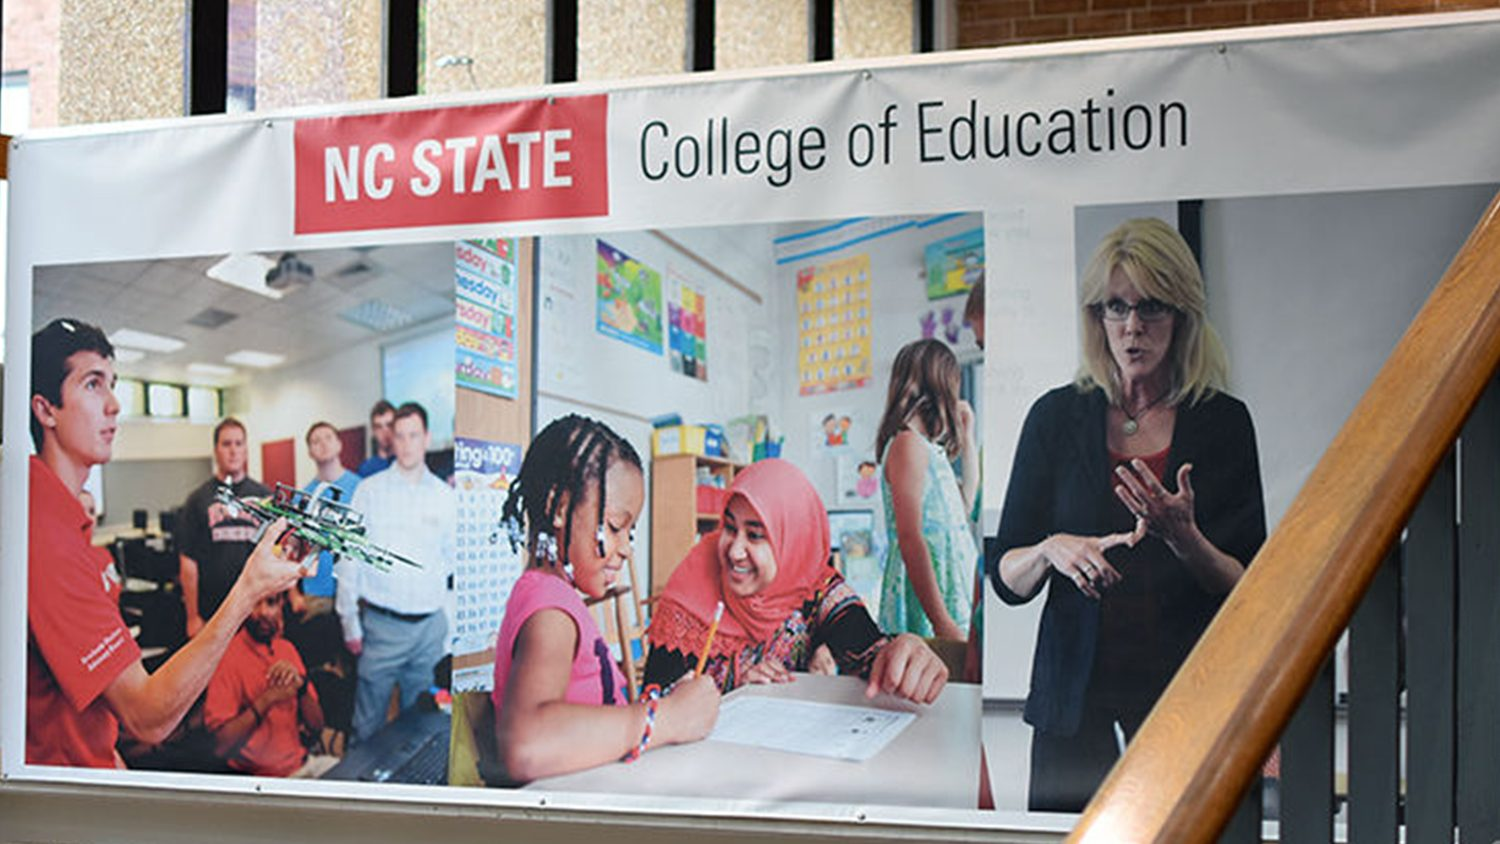 College of Education Banner